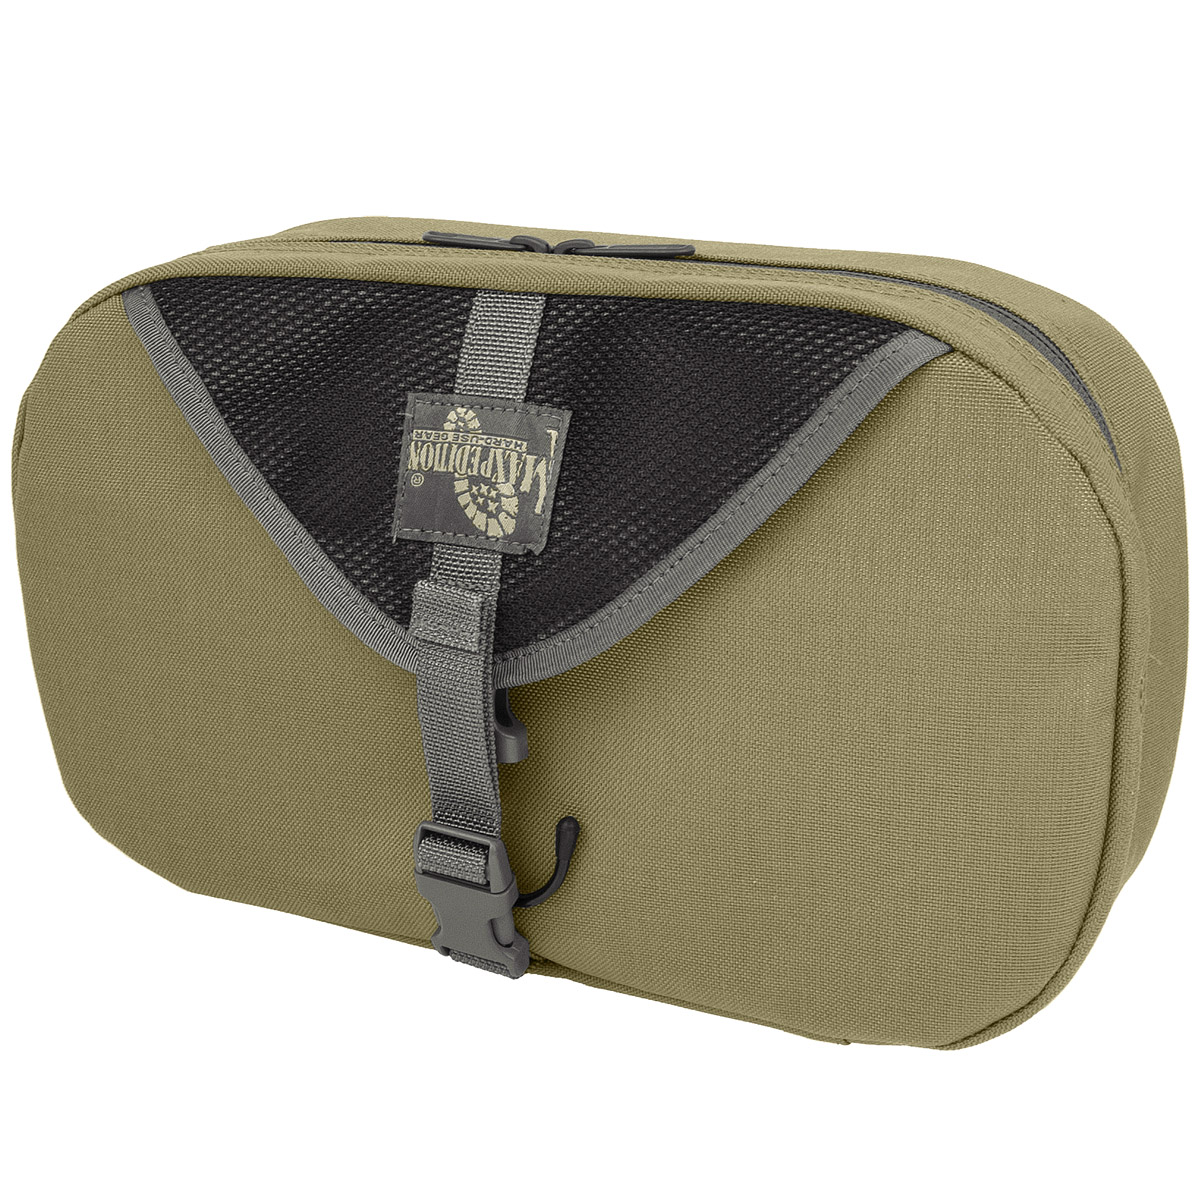 Sentinel Maxpedition Hanging Mens Toiletry Wash Bag Foldable Military Travel Pouch Khaki